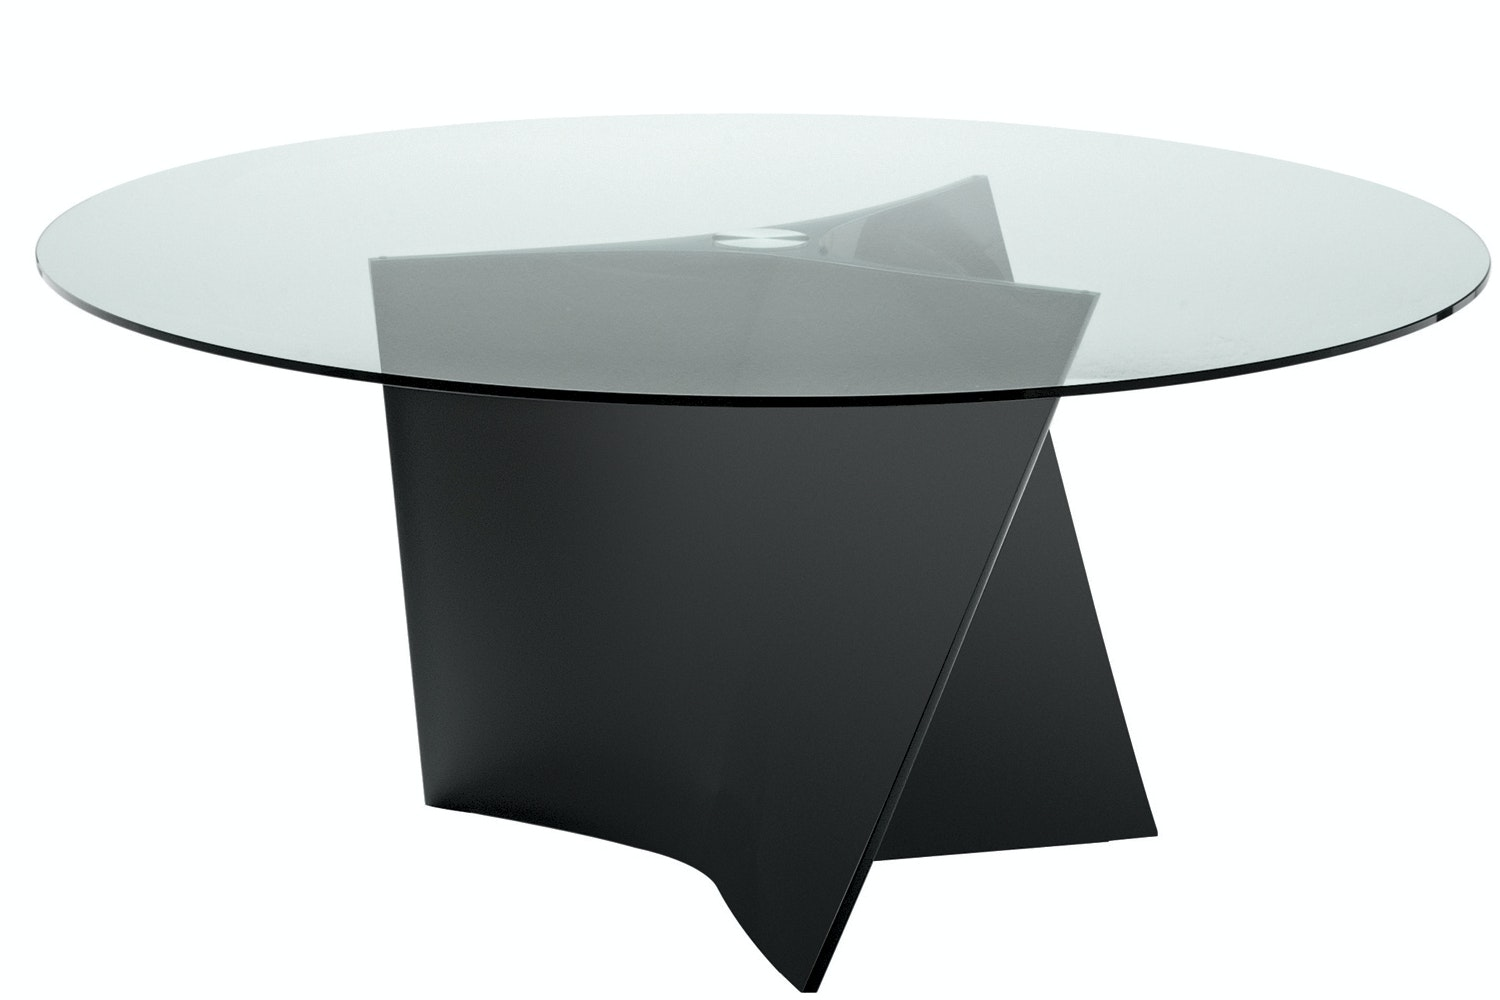 Elica 2576 Table by Prospero Rasulo for Zanotta